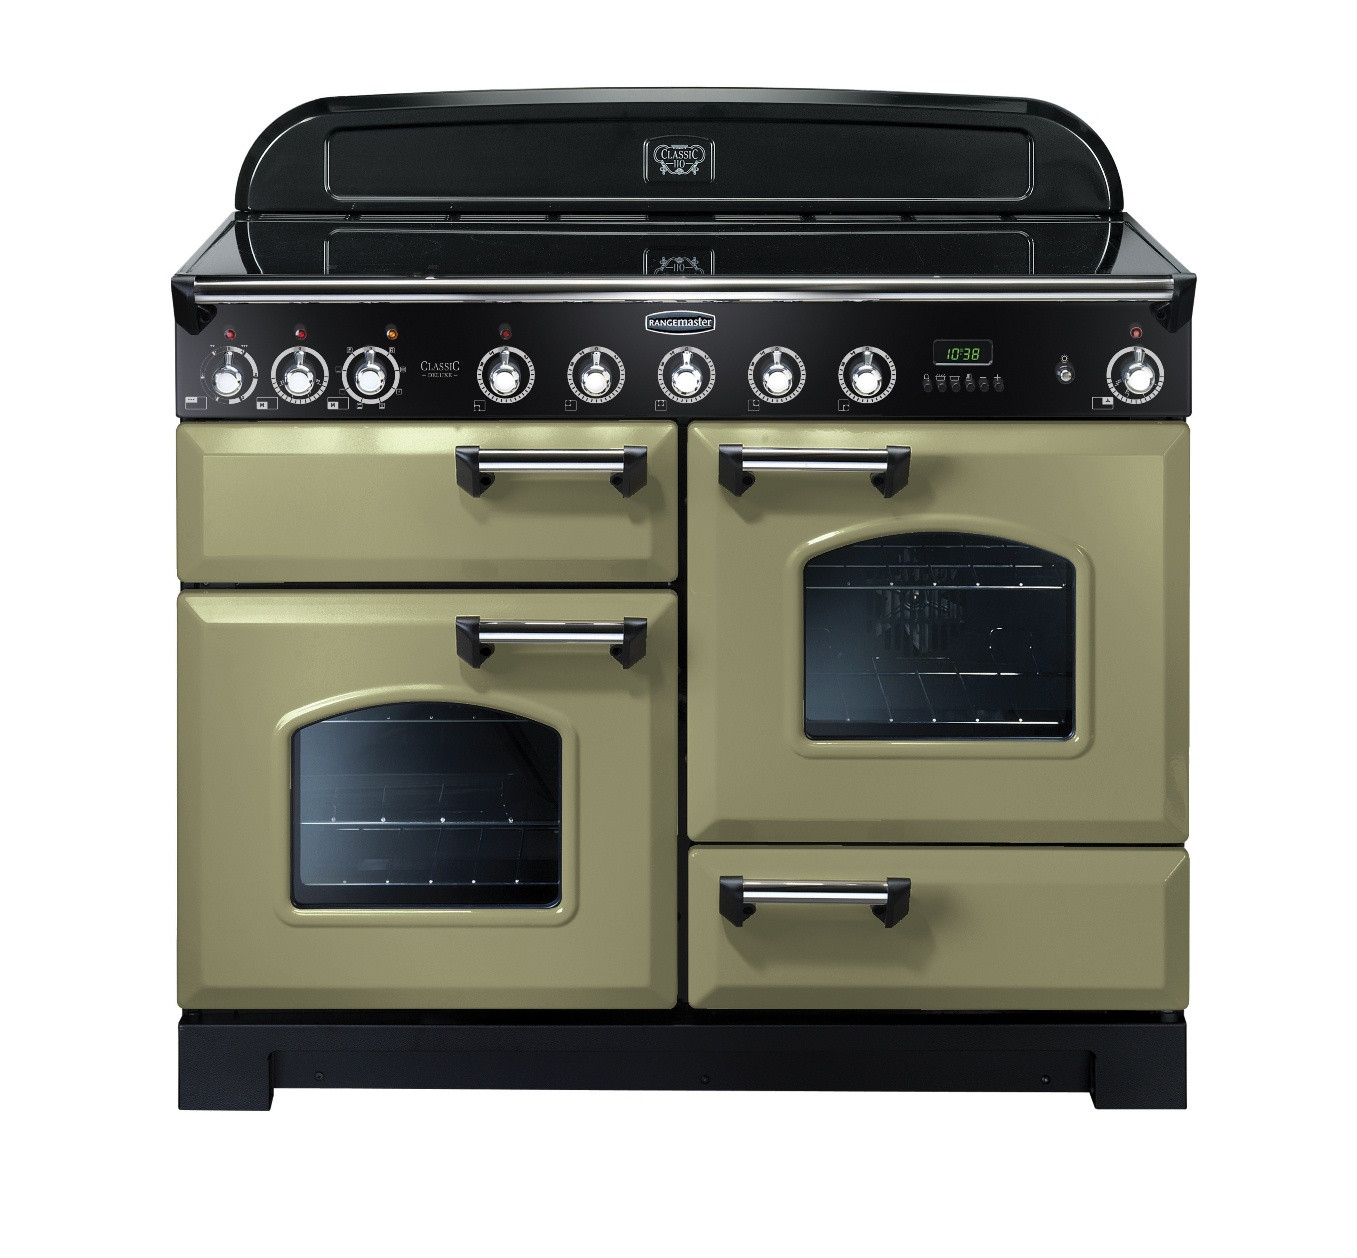 Rangemaster Classic Deluxe 110 Induction Range Cooker Olive Green/Chrome Trim CDL110EIOG/C 100950